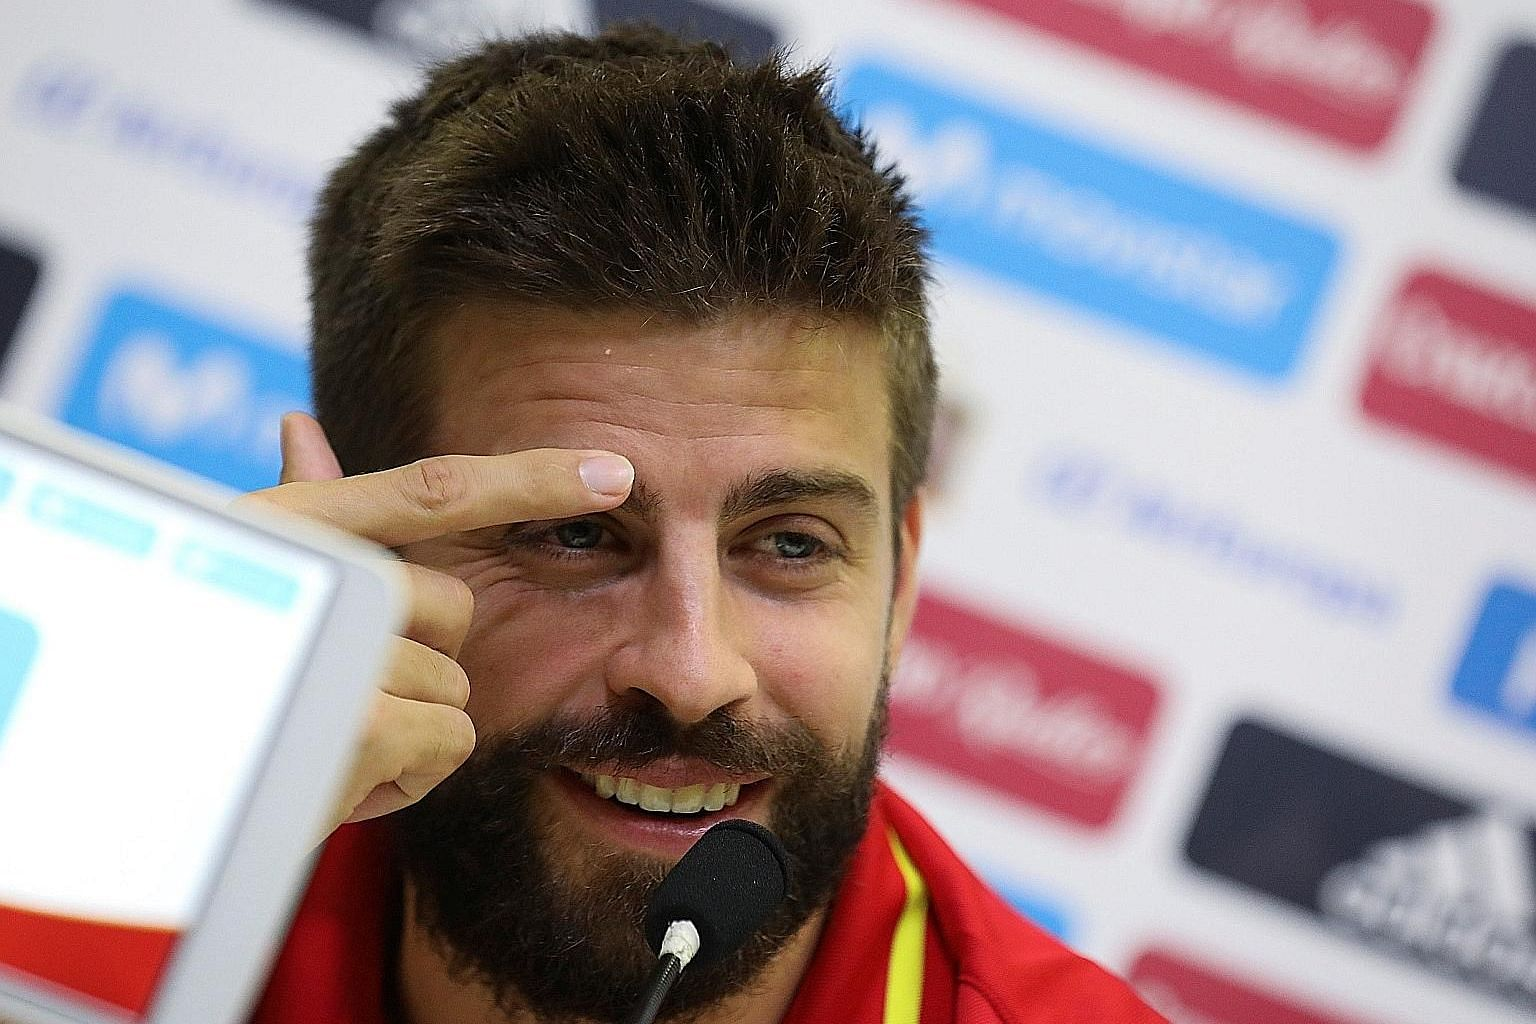 Spain and Barcelona defender Gerard Pique in a news conference at the training grounds in Las Rozas yesterday. He insists that he does not back either side in the Catalonia independence debate.